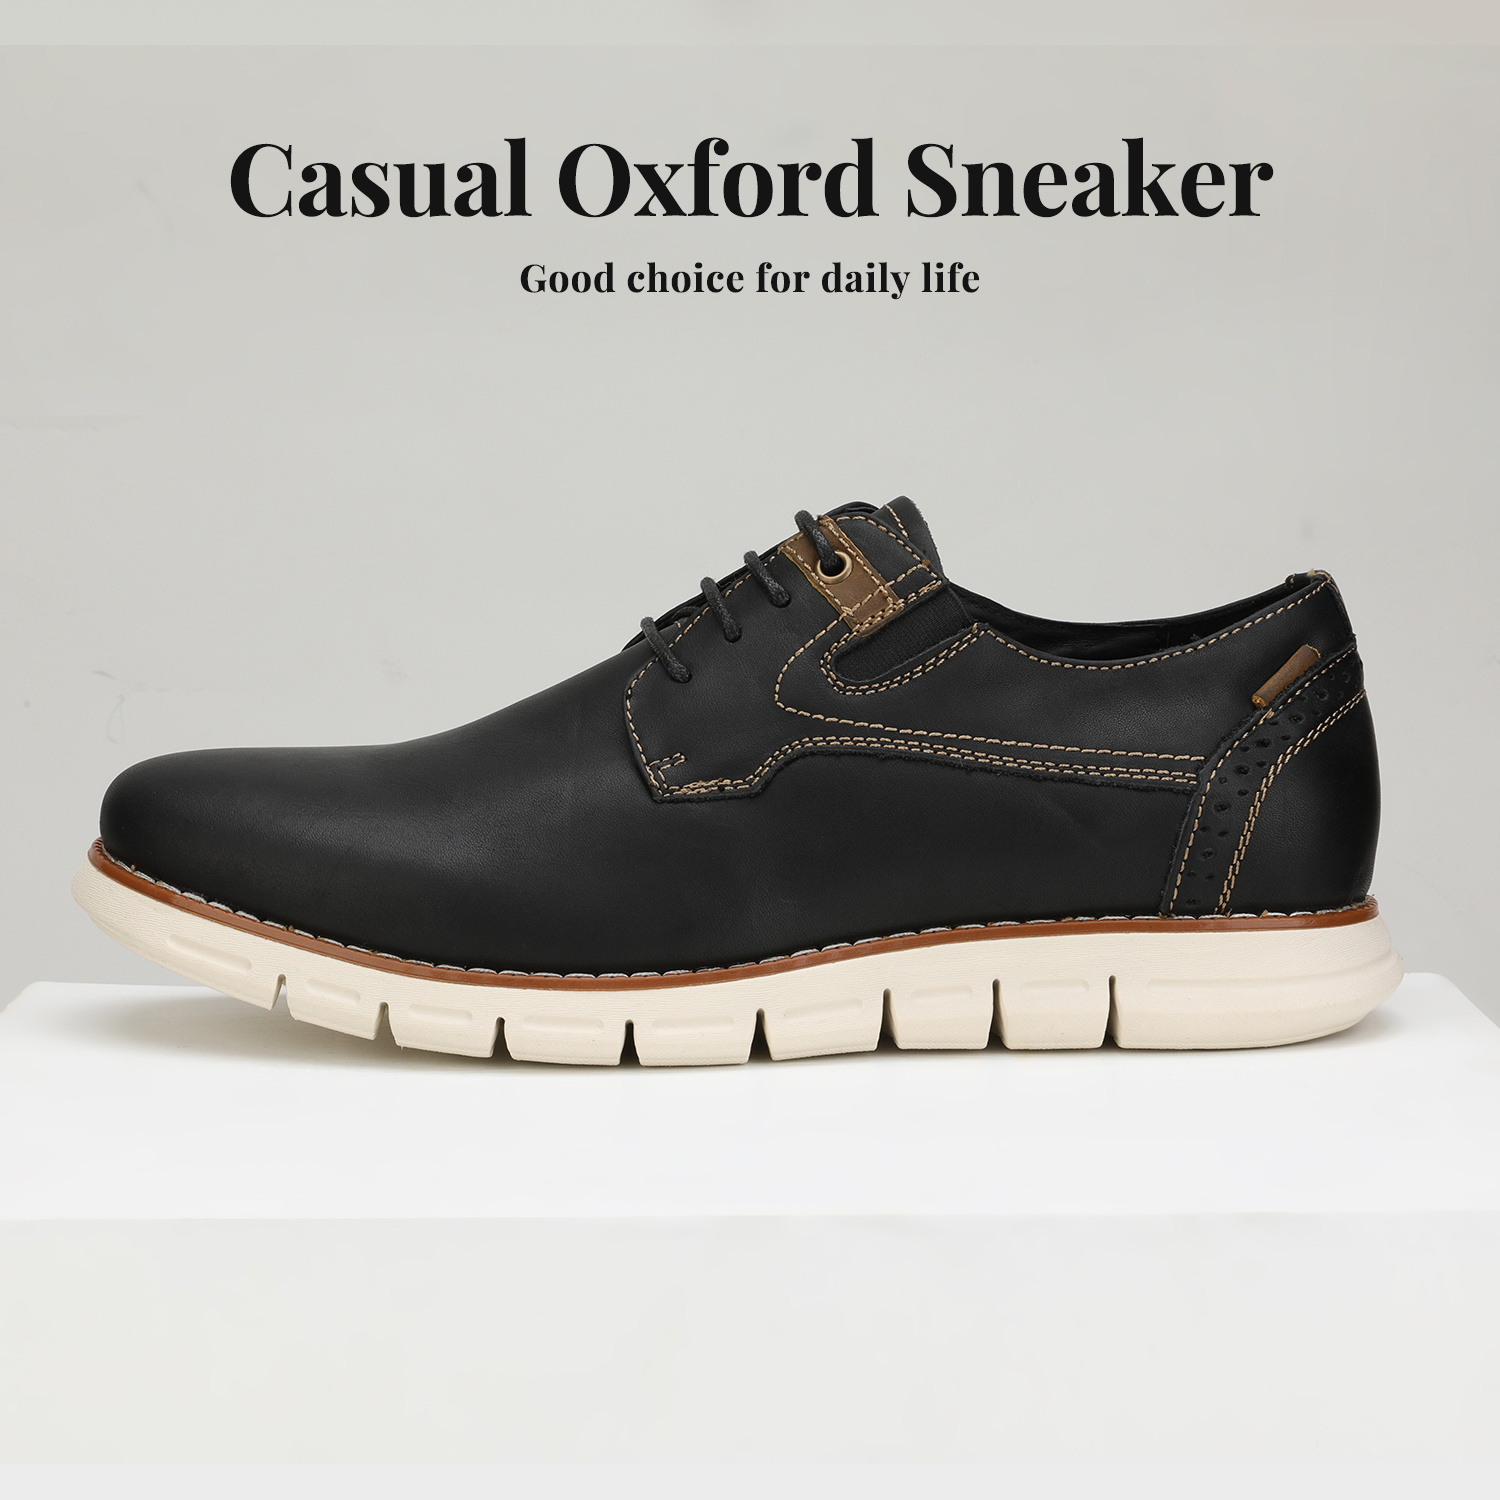 Men-s-Genuine-Leather-Casual-Formal-Sneakers-Lace-up-Business-Oxford-Dress-Shoes thumbnail 38